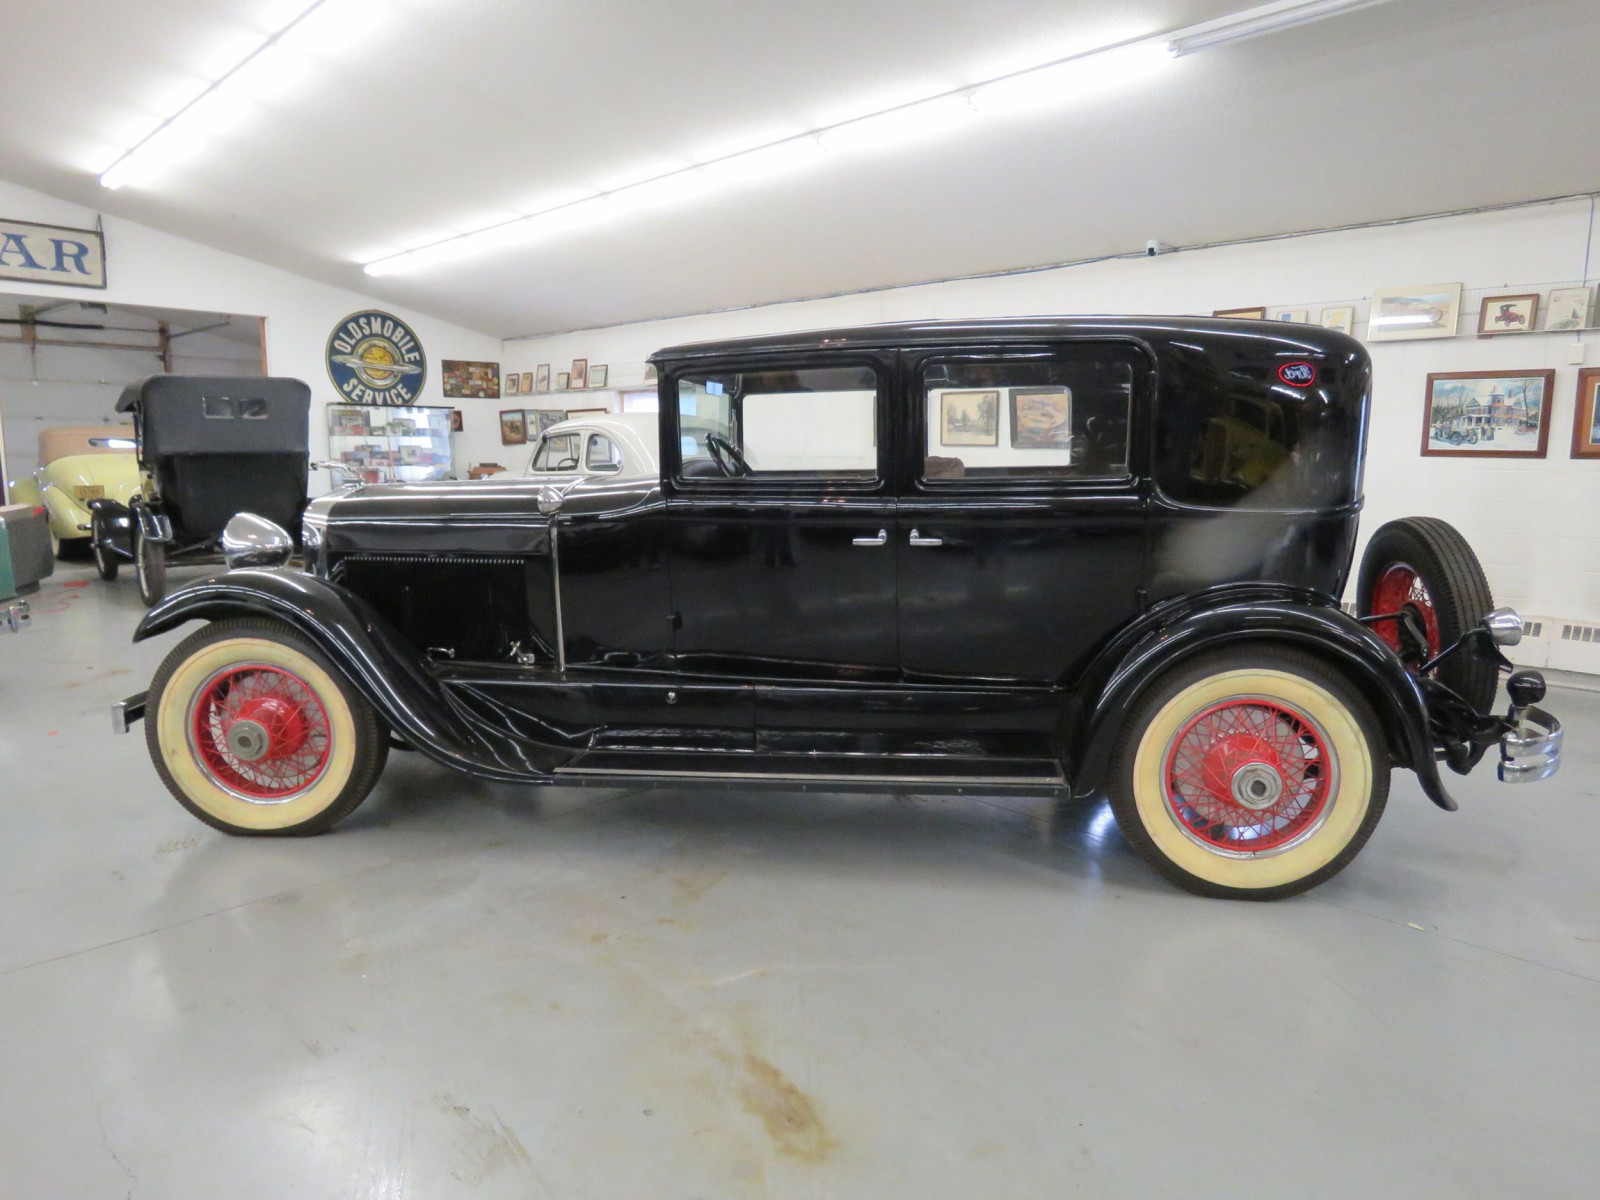 1929 Lincoln Model L 4dr Sedan - Image 9